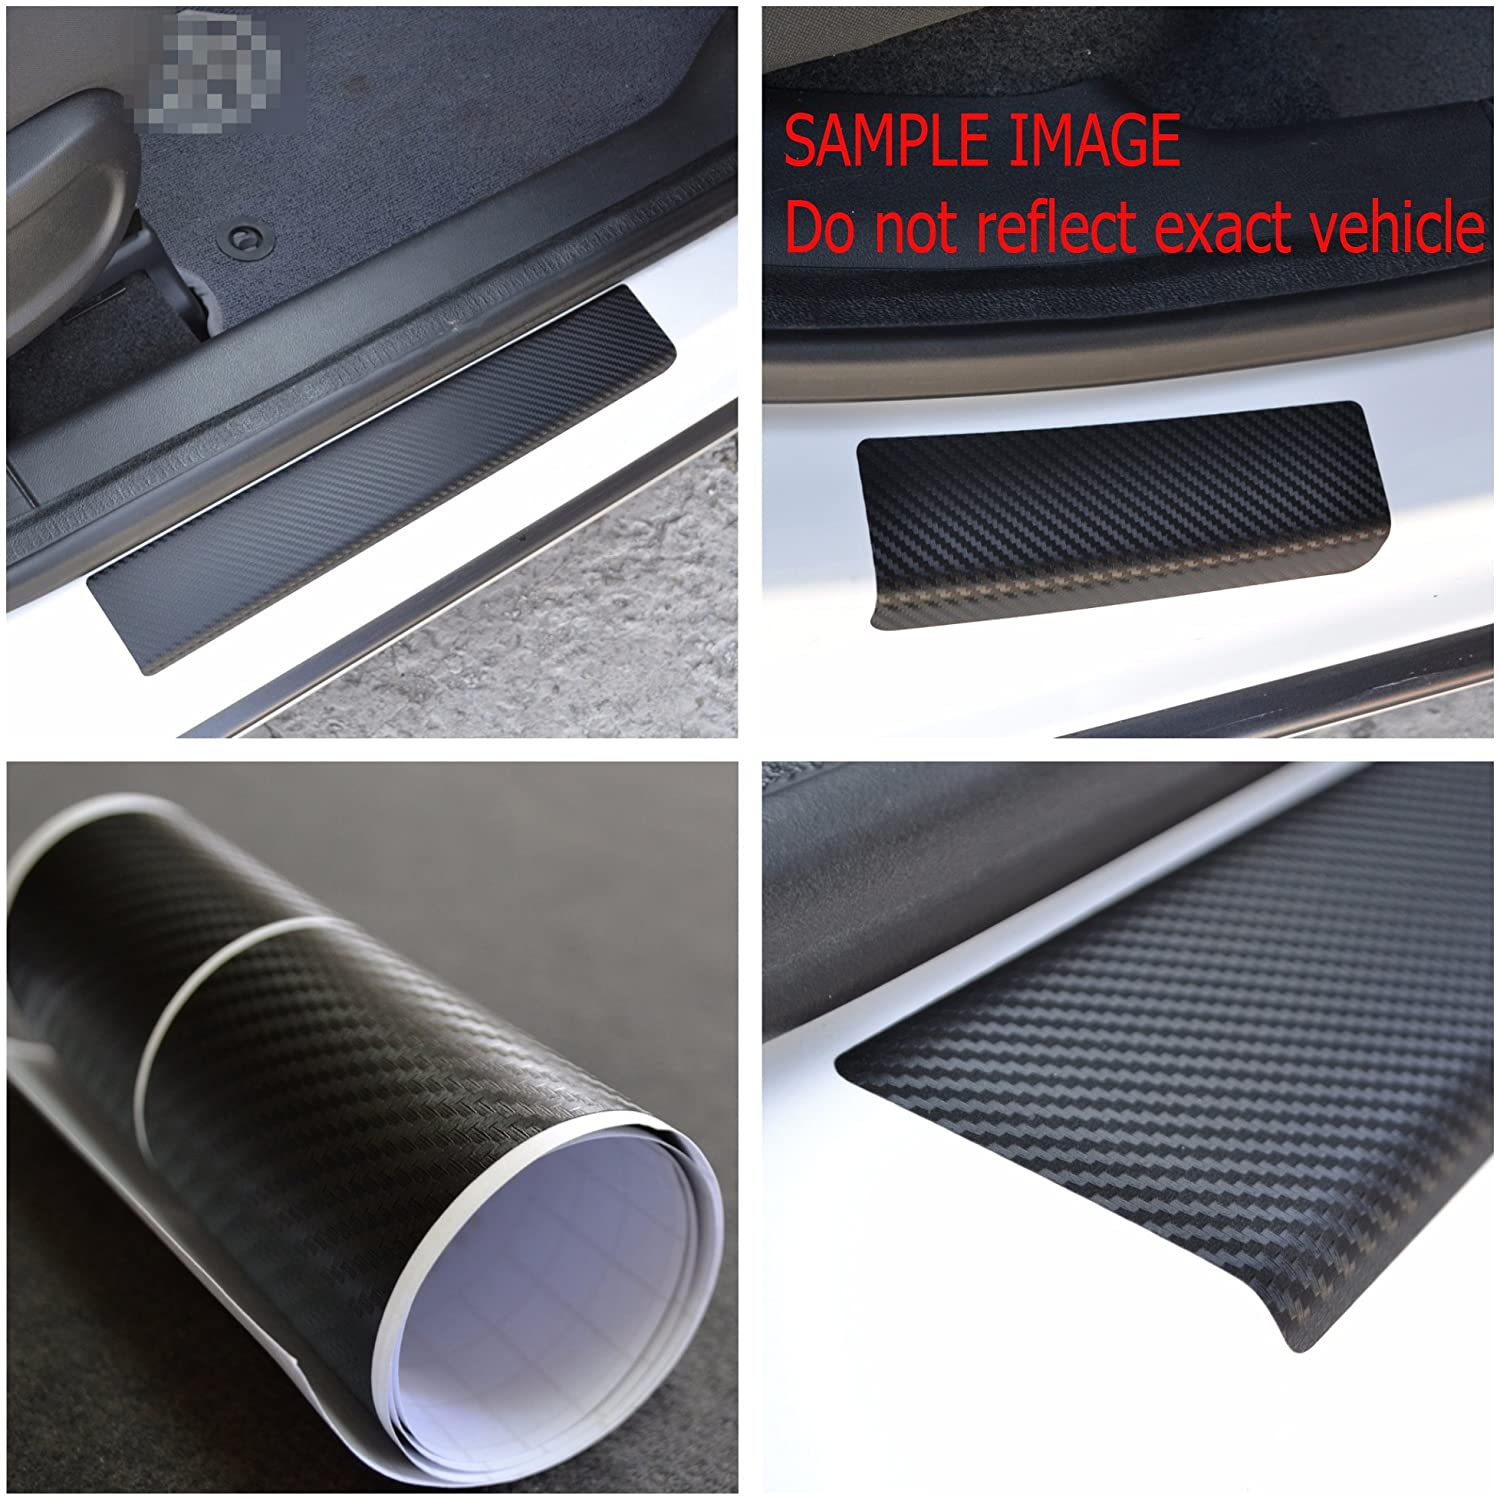 Door Sill Vinyl Wrap Scuff Protection Film fit Citroen C4 Picasso II 2013- Black Carbon Fiber Texture Decals Entry Guard 4 pcs Kit Paint Protector